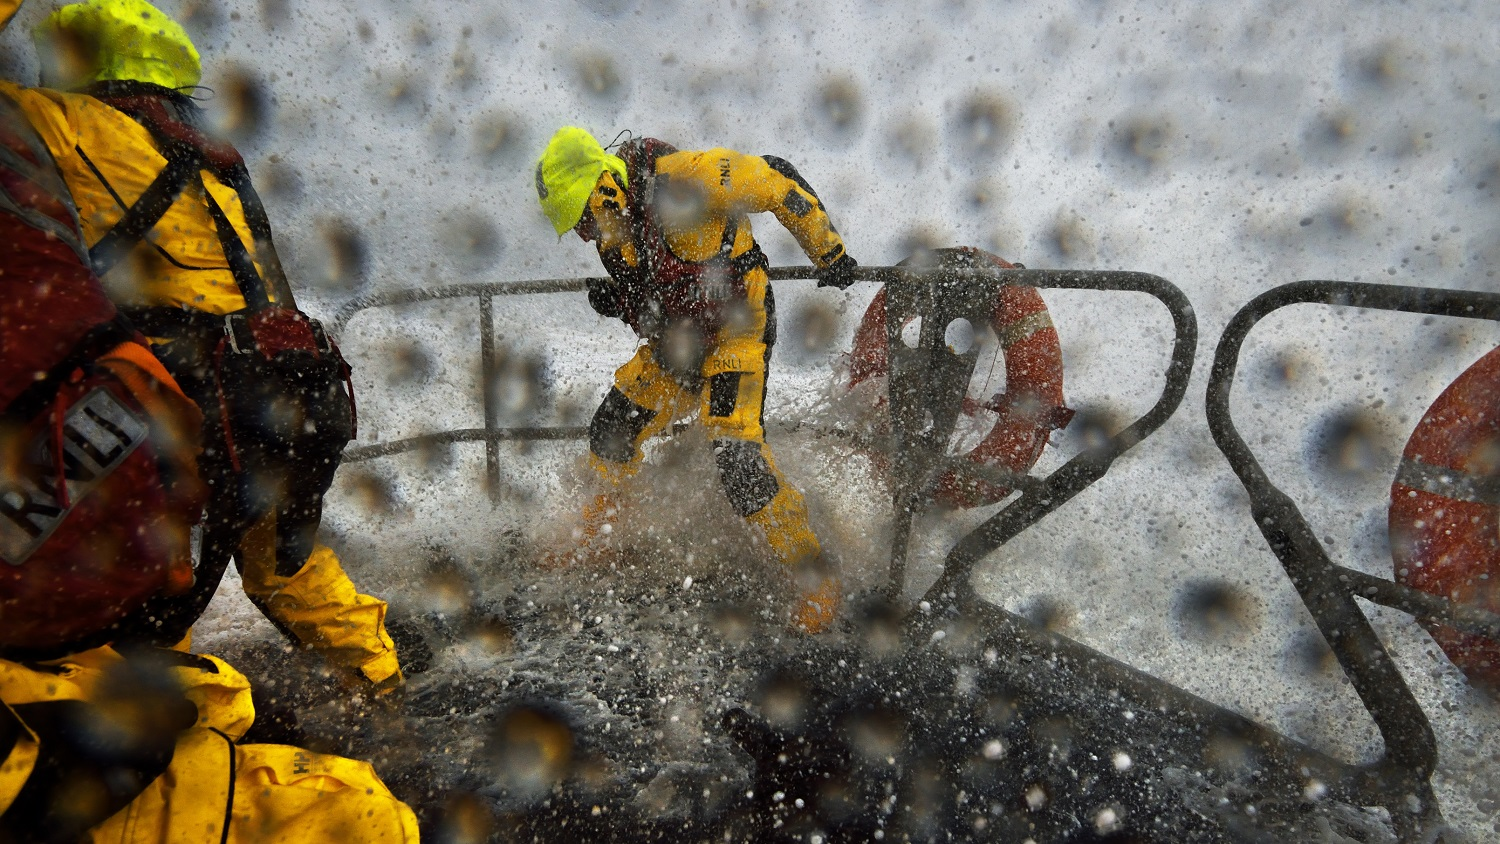 Crew members wearing new RNLI kit onboard Lowestoft Shannon class lifeboat in extremely rough weather and snow blizzards